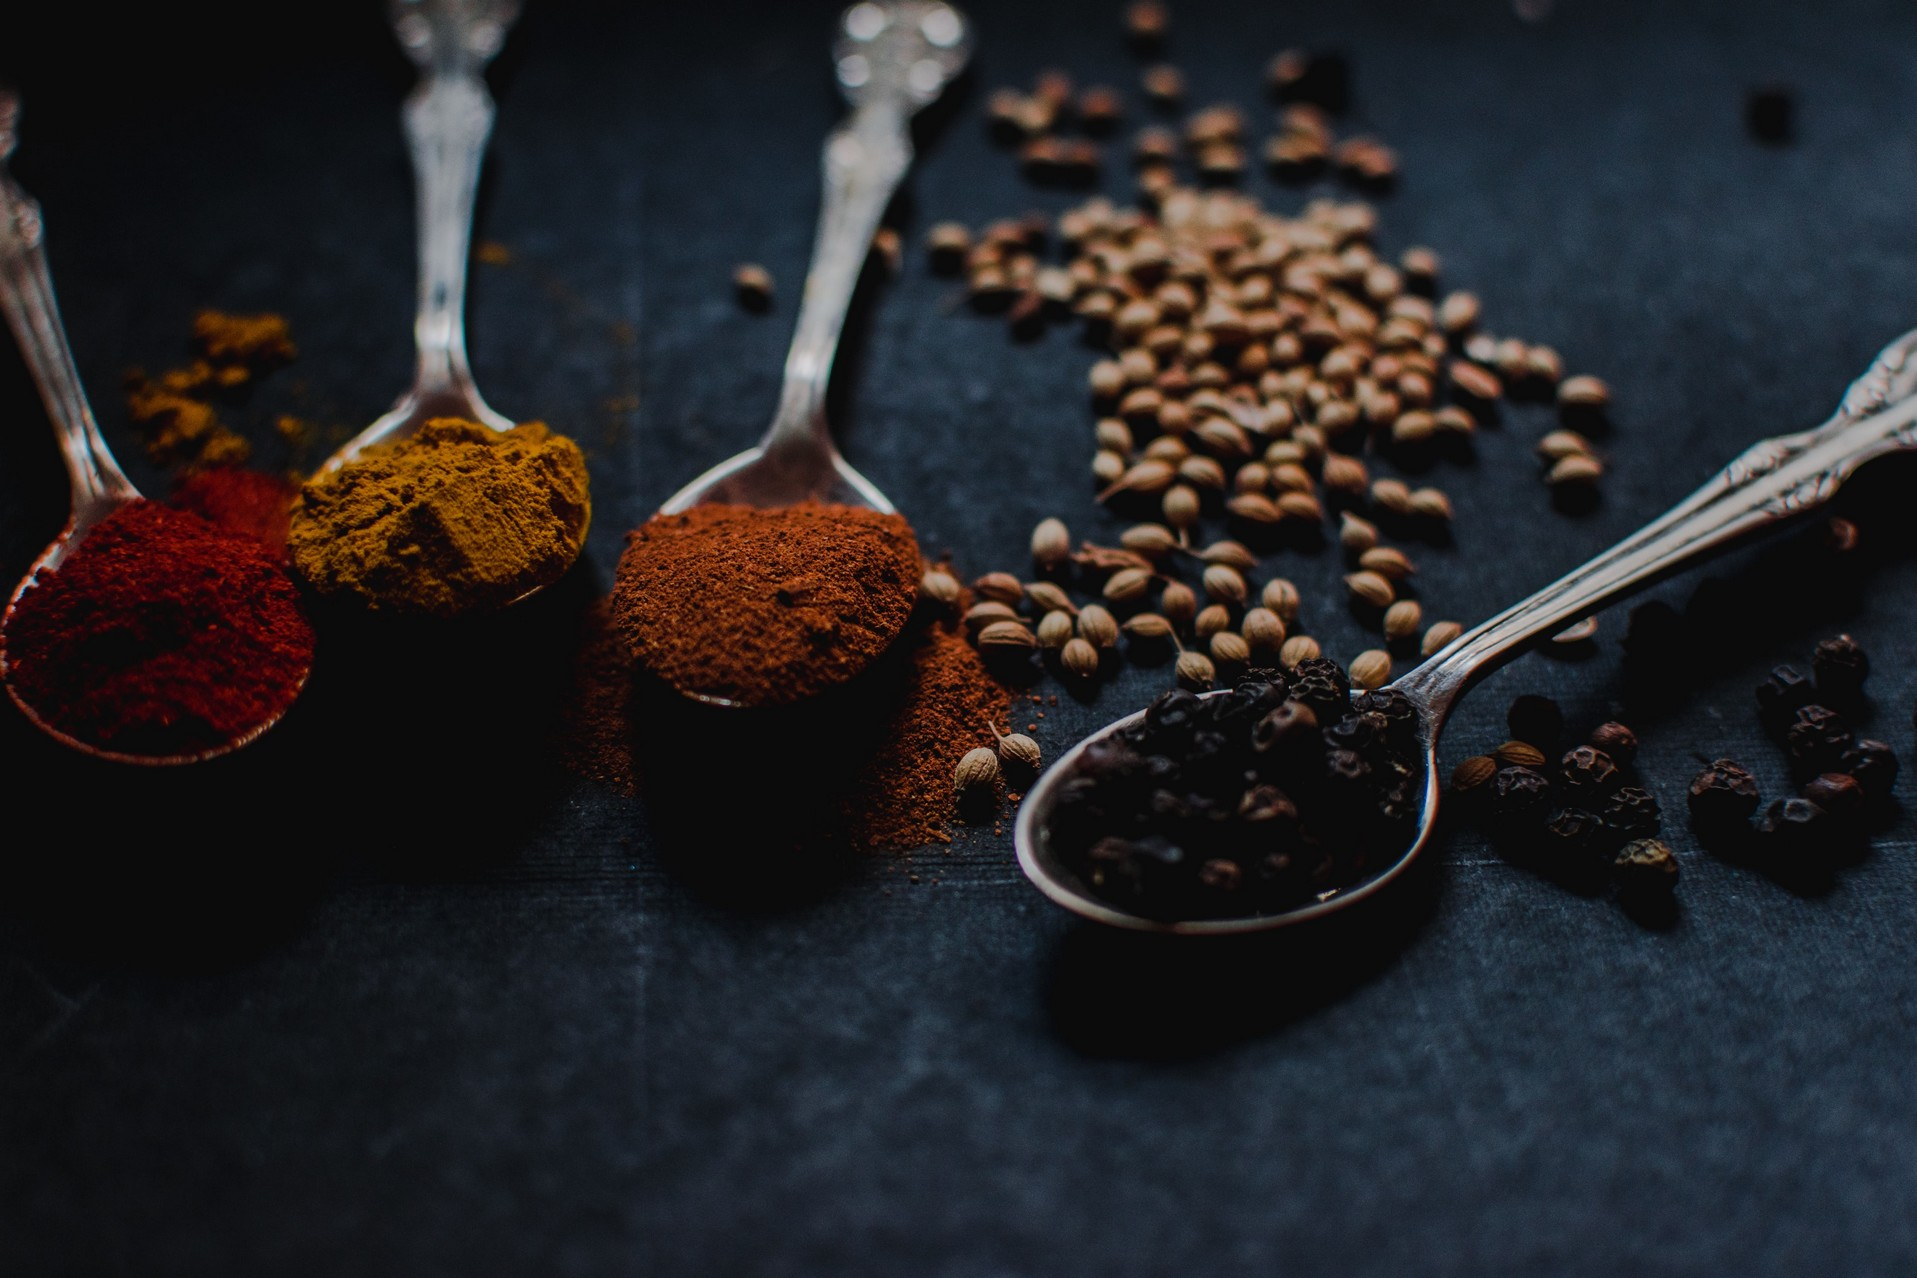 array of spices overflowing on silver spoons on a black background